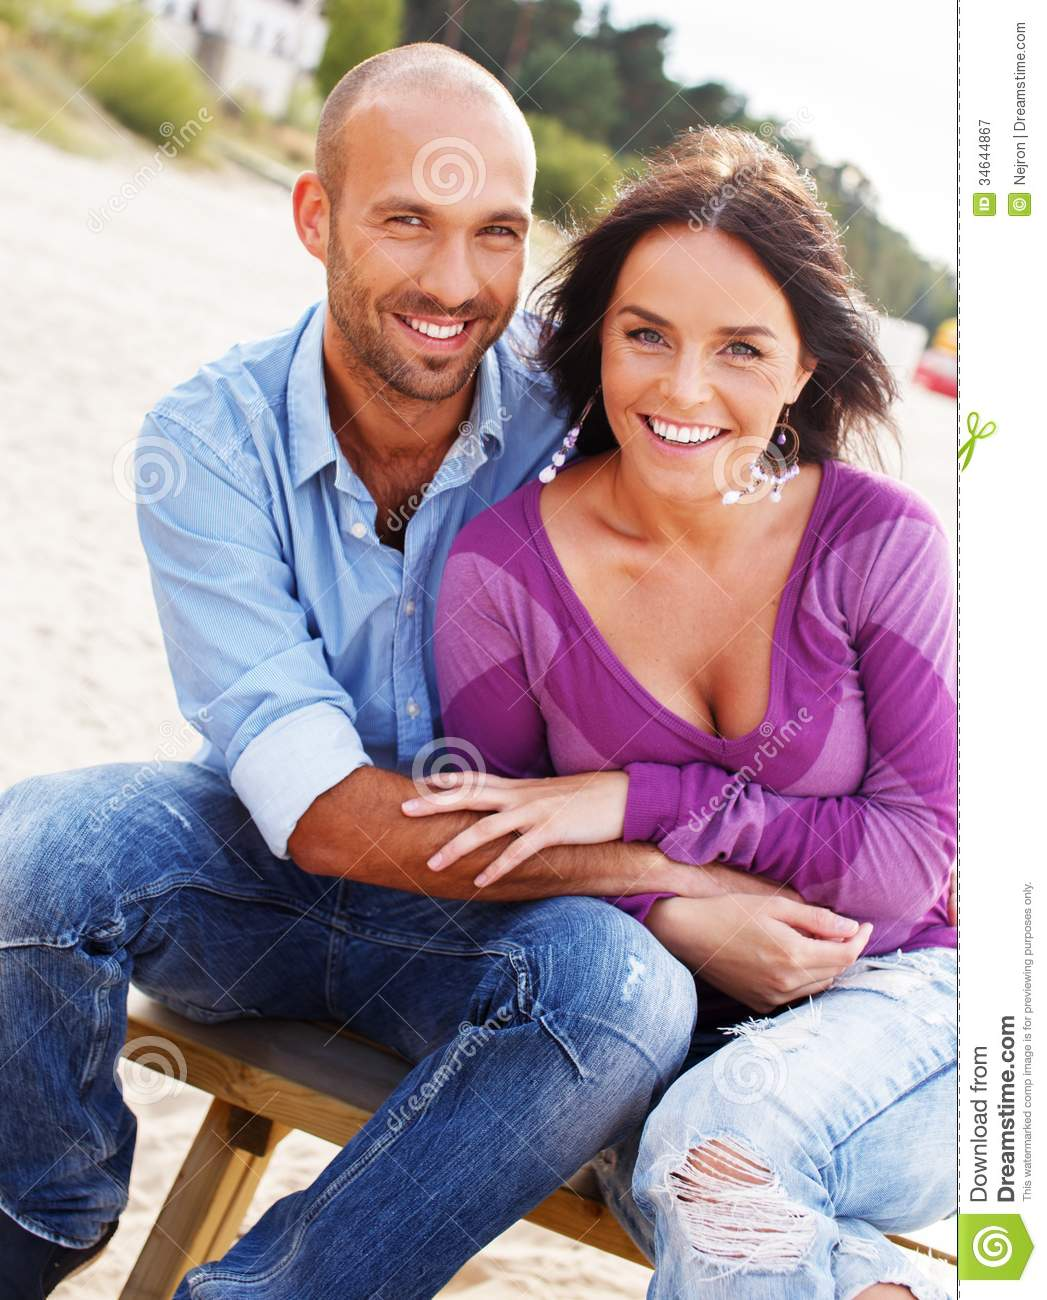 Couple At The Beach Stock Image Image Of Caucasian: Happy Smiling Middle-aged Couple Stock Image